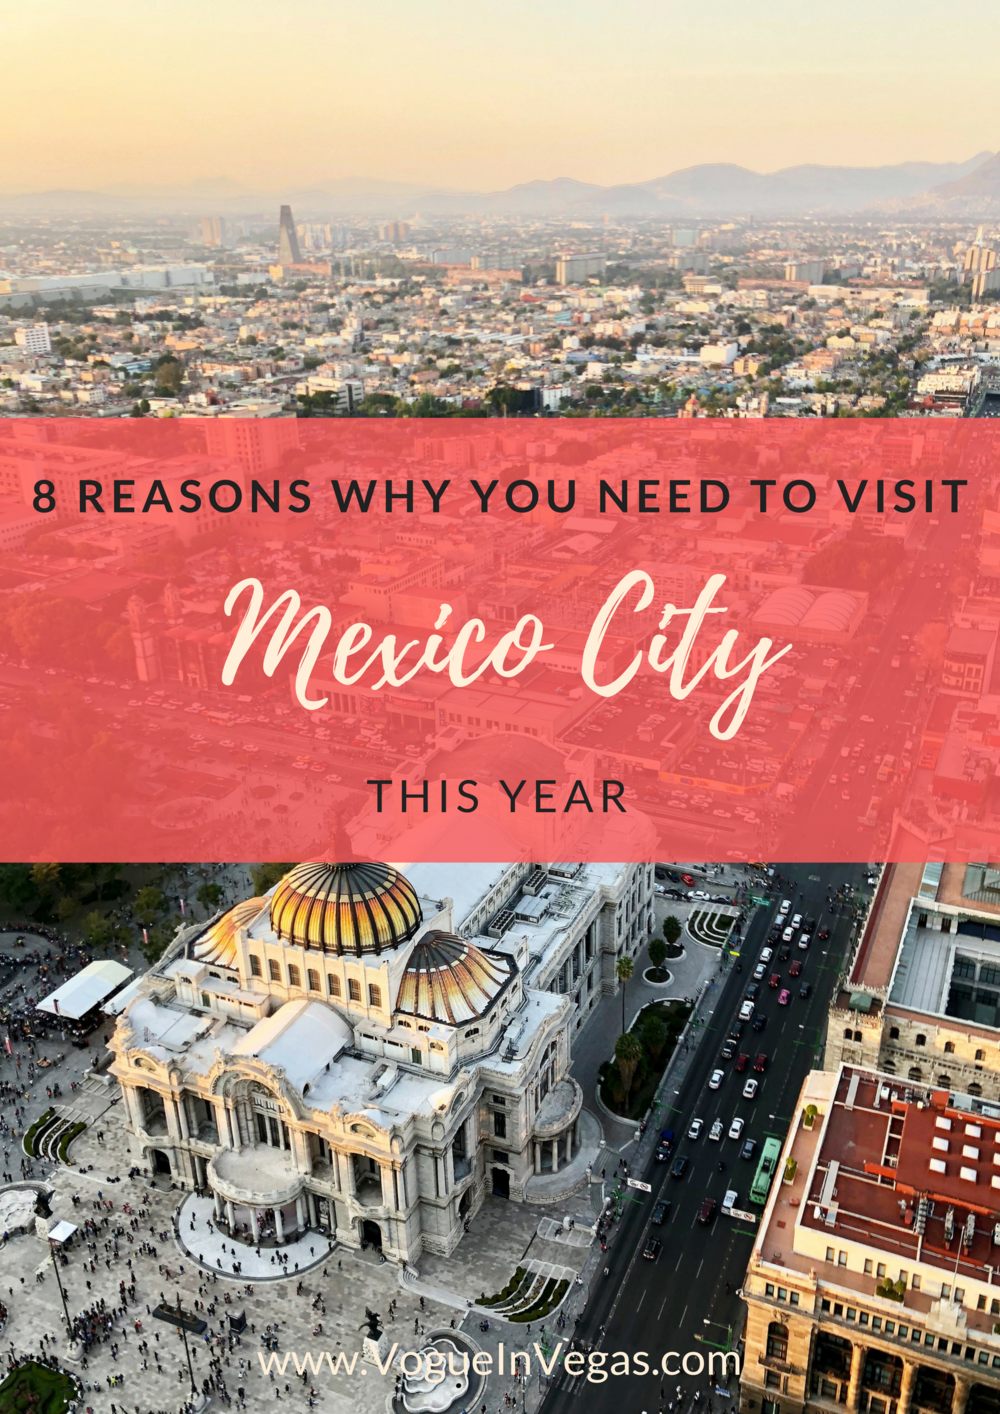 8 Reasons Why You Need to Visit Mexico City This Year.png